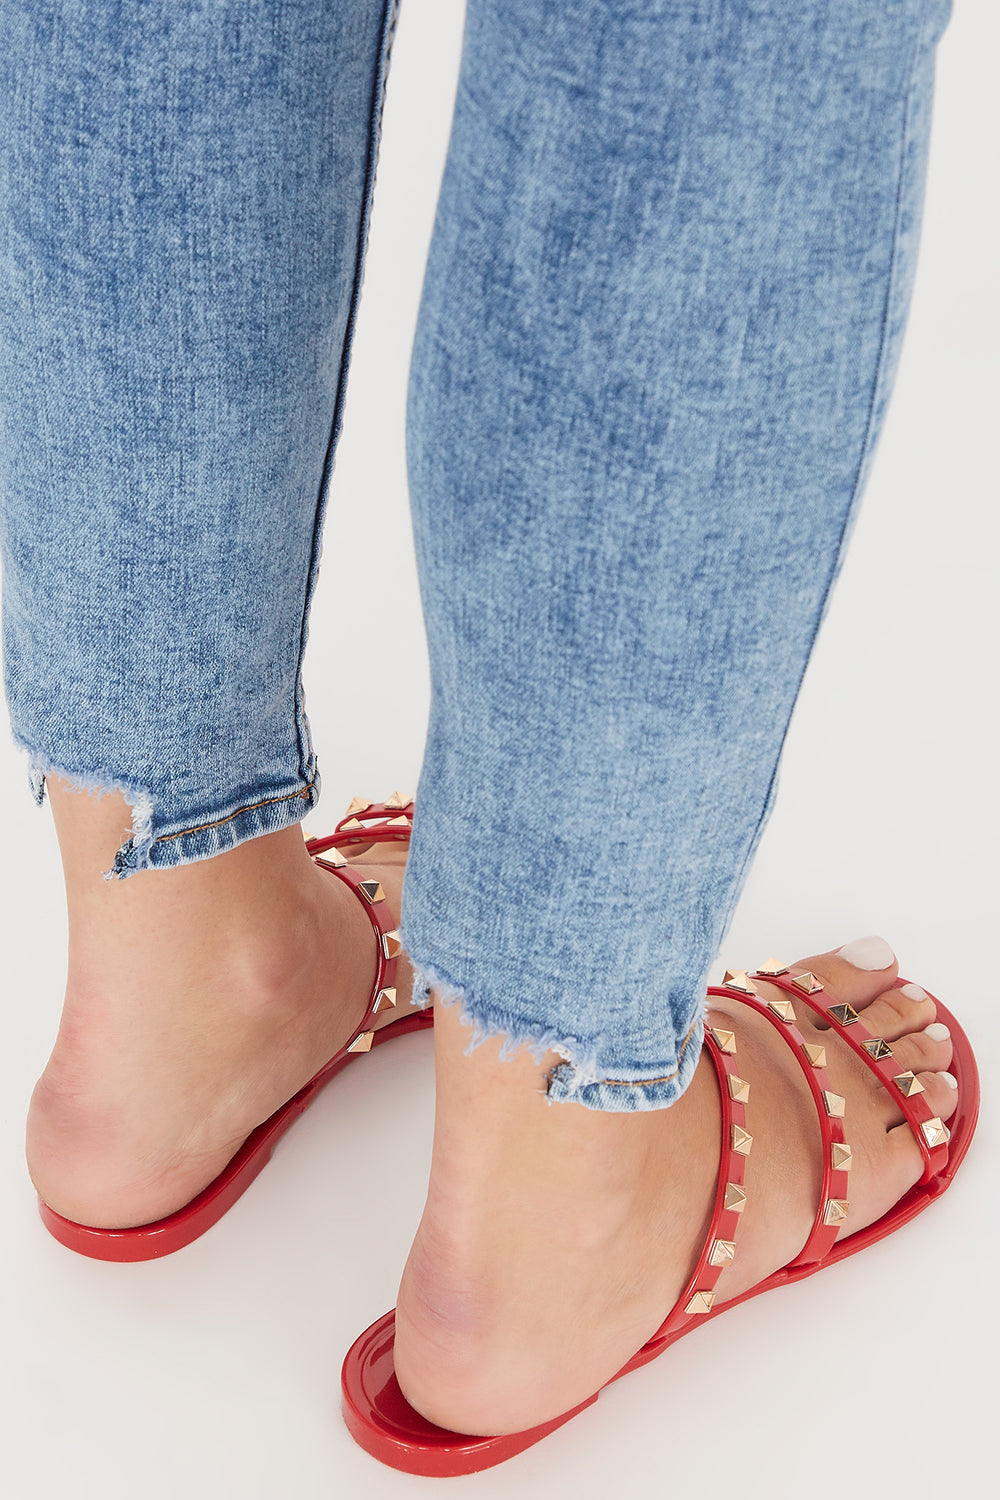 Studded Jelly Triple Band Sandal Red